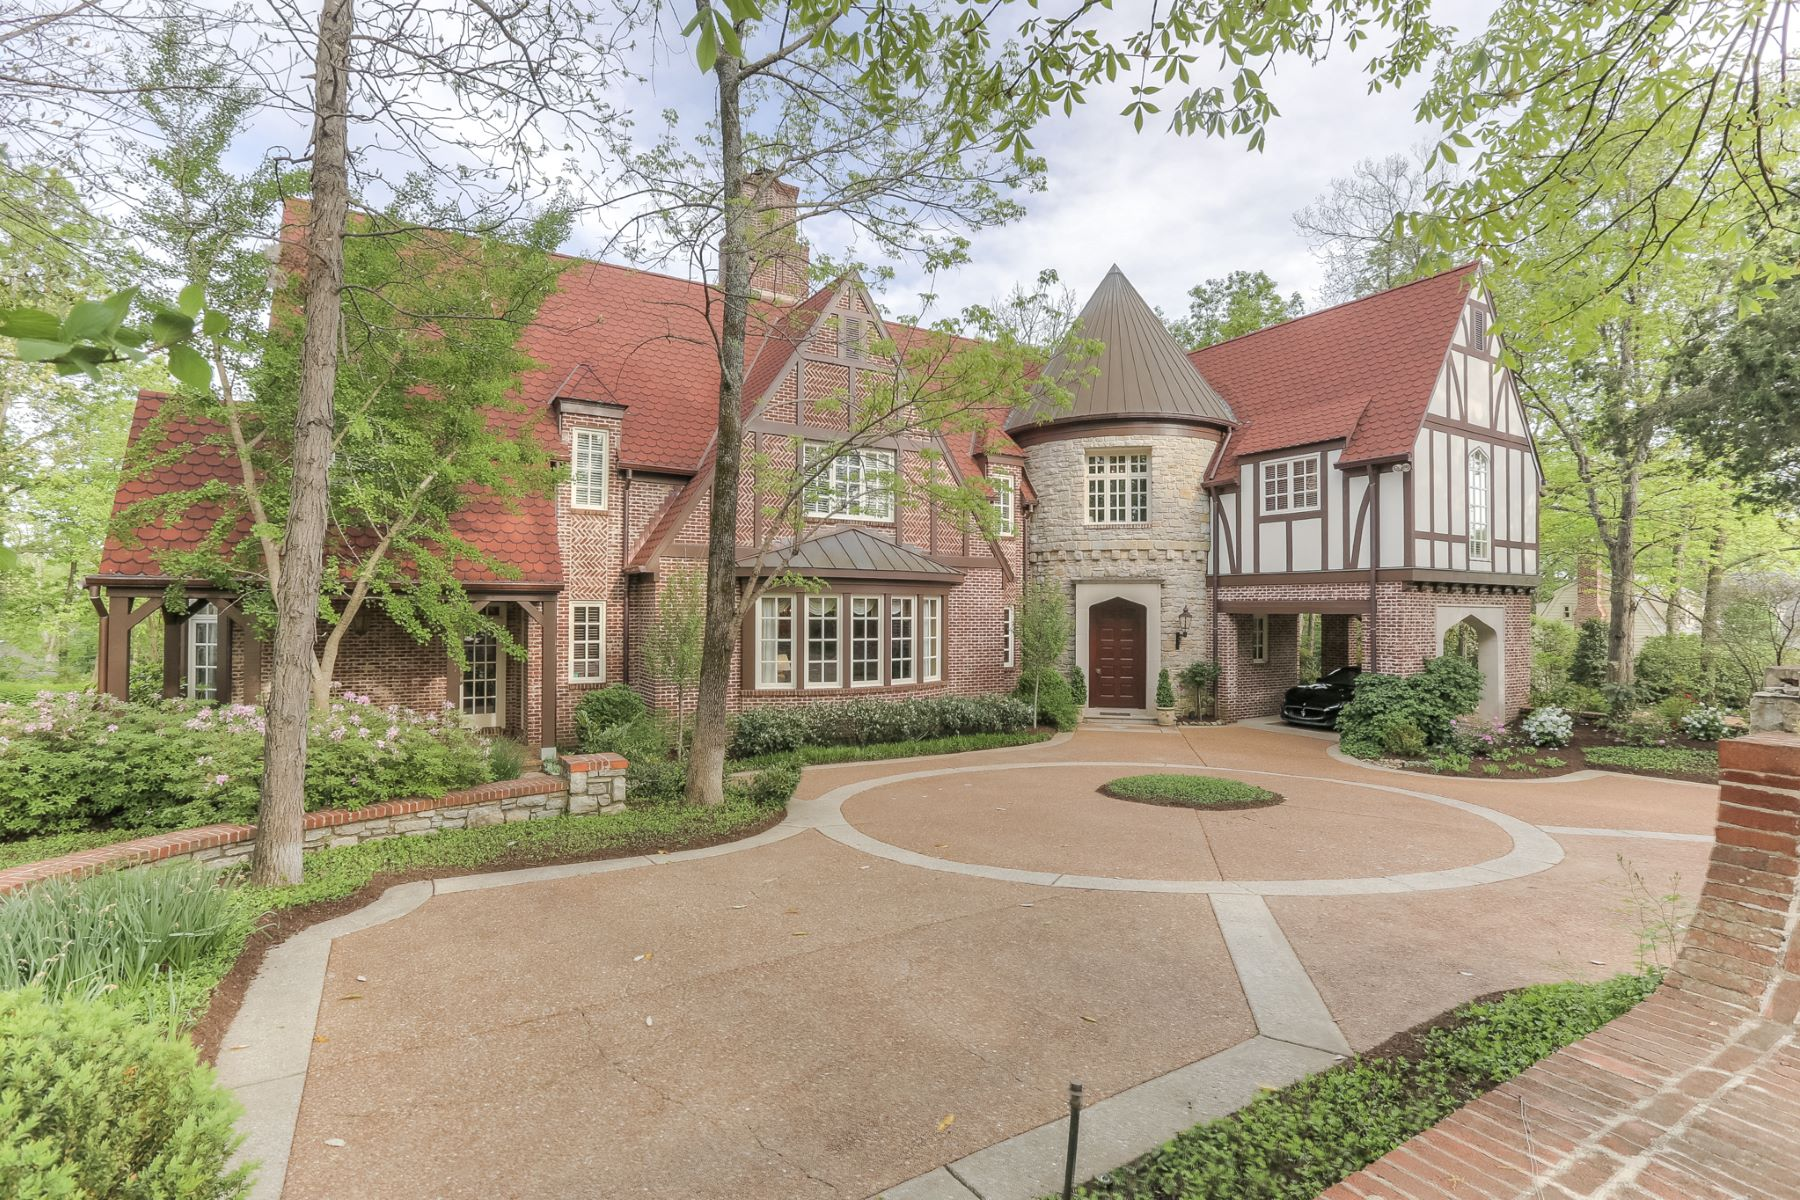 Maison unifamiliale pour l Vente à Beautiful English Tudor 624 Westview Avenue Nashville, Tennessee, 37205 États-Unis